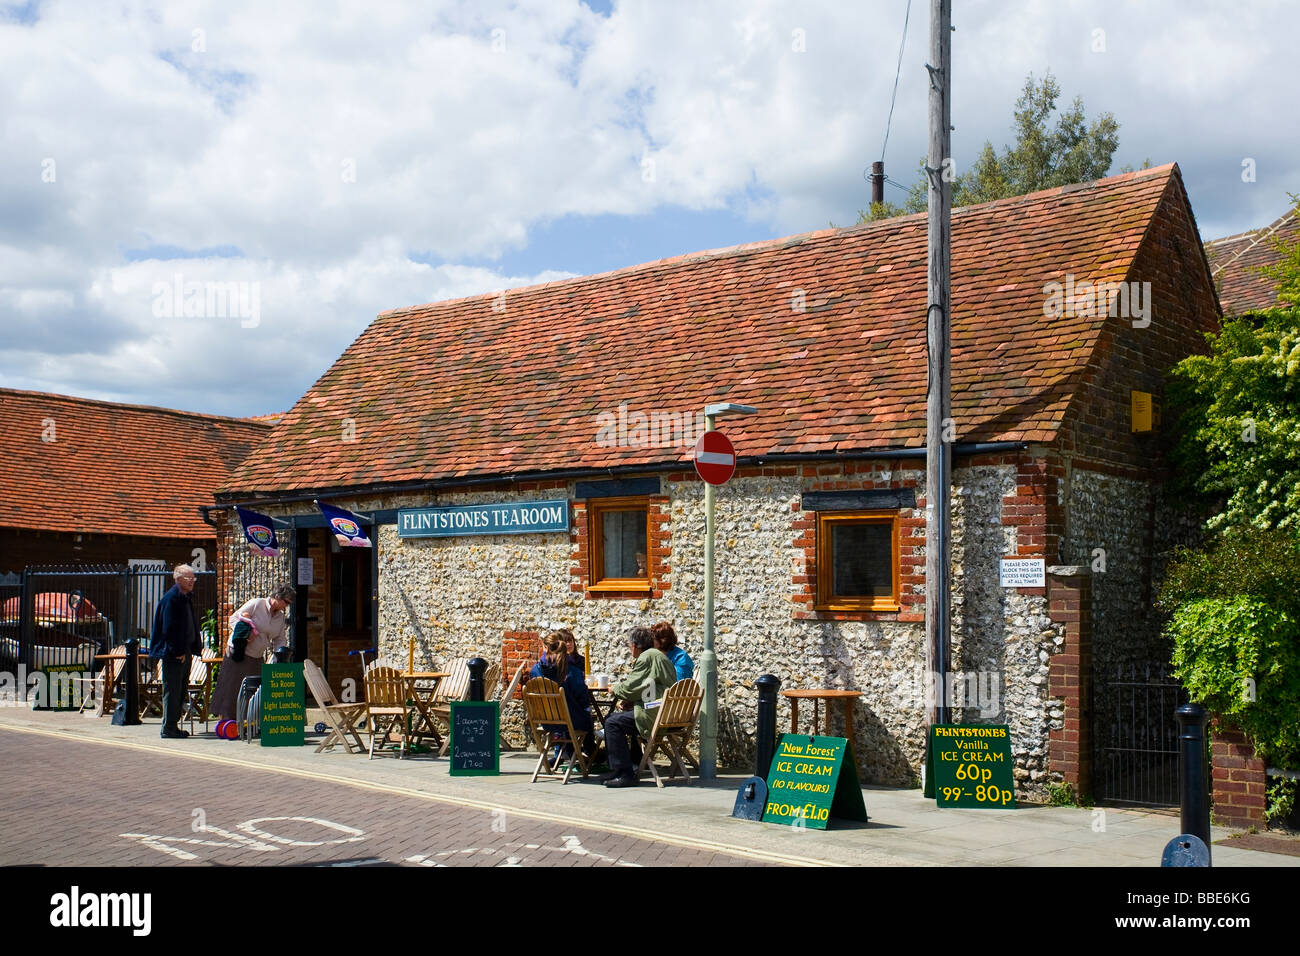 People sitting outside Flinstones Tearooms, Emsworth, Hampshire, UK Stock Photo